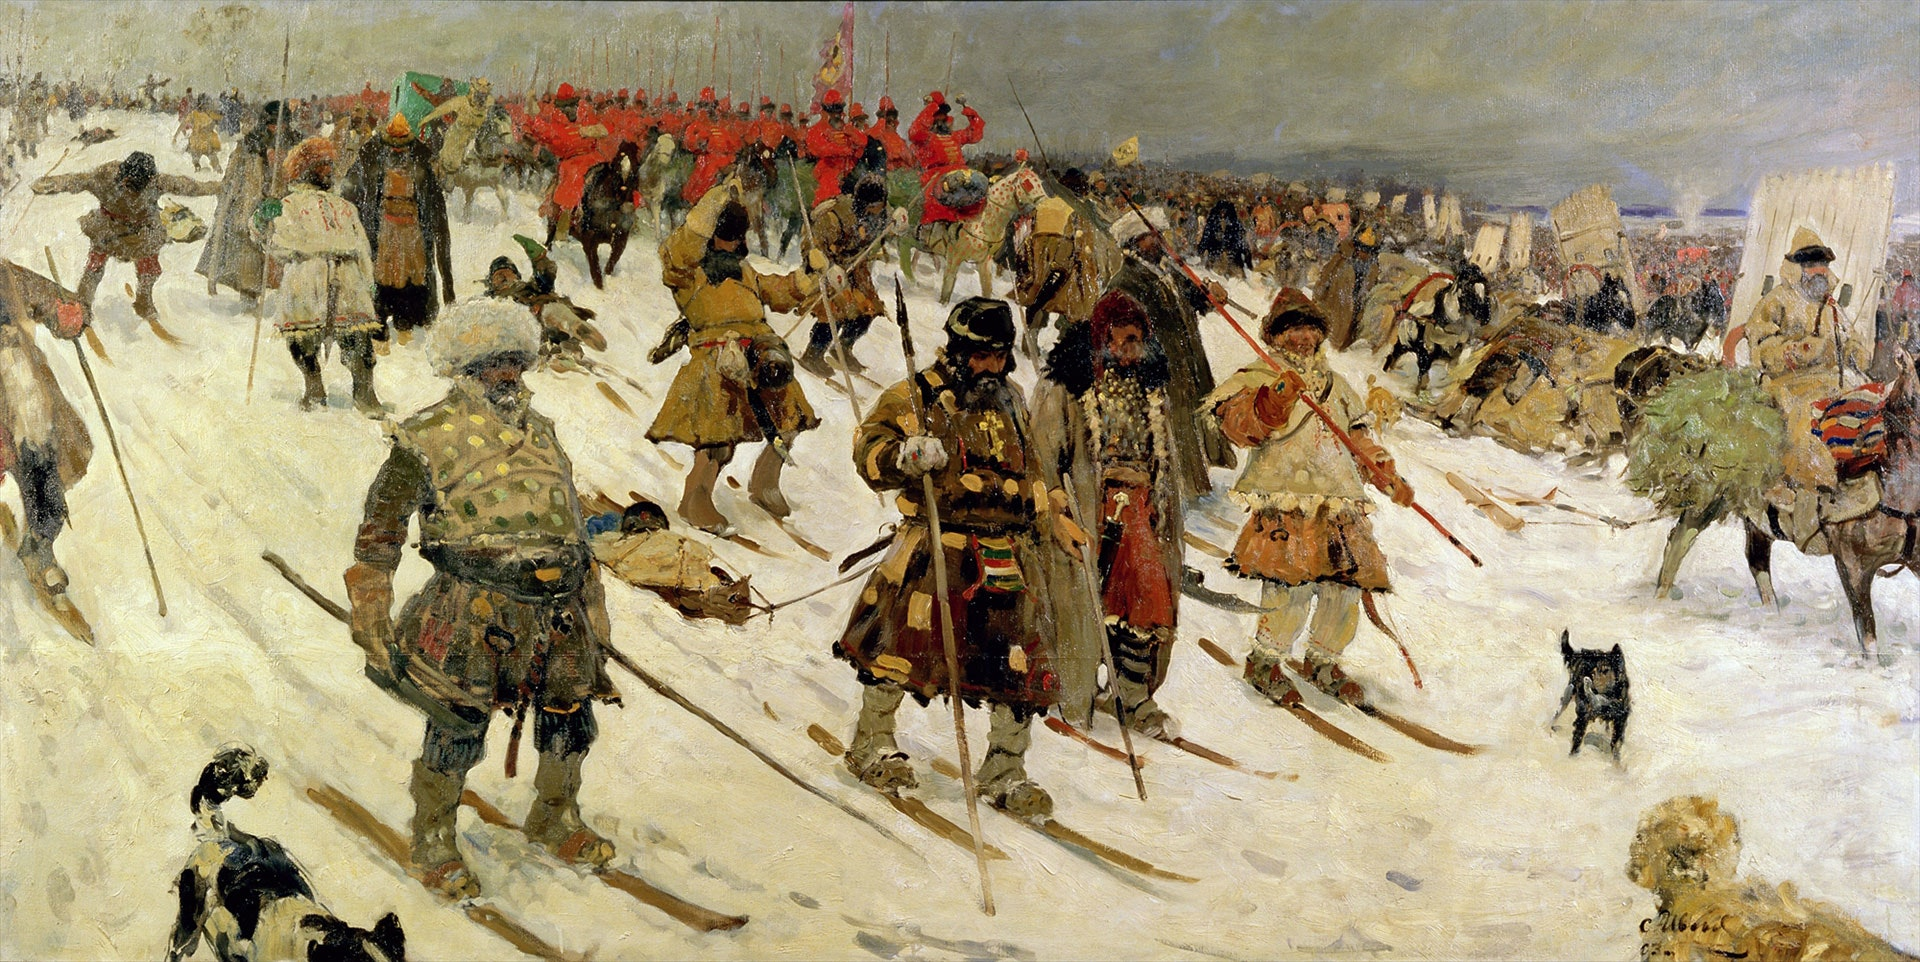 Winter campaign against the Lithuanians